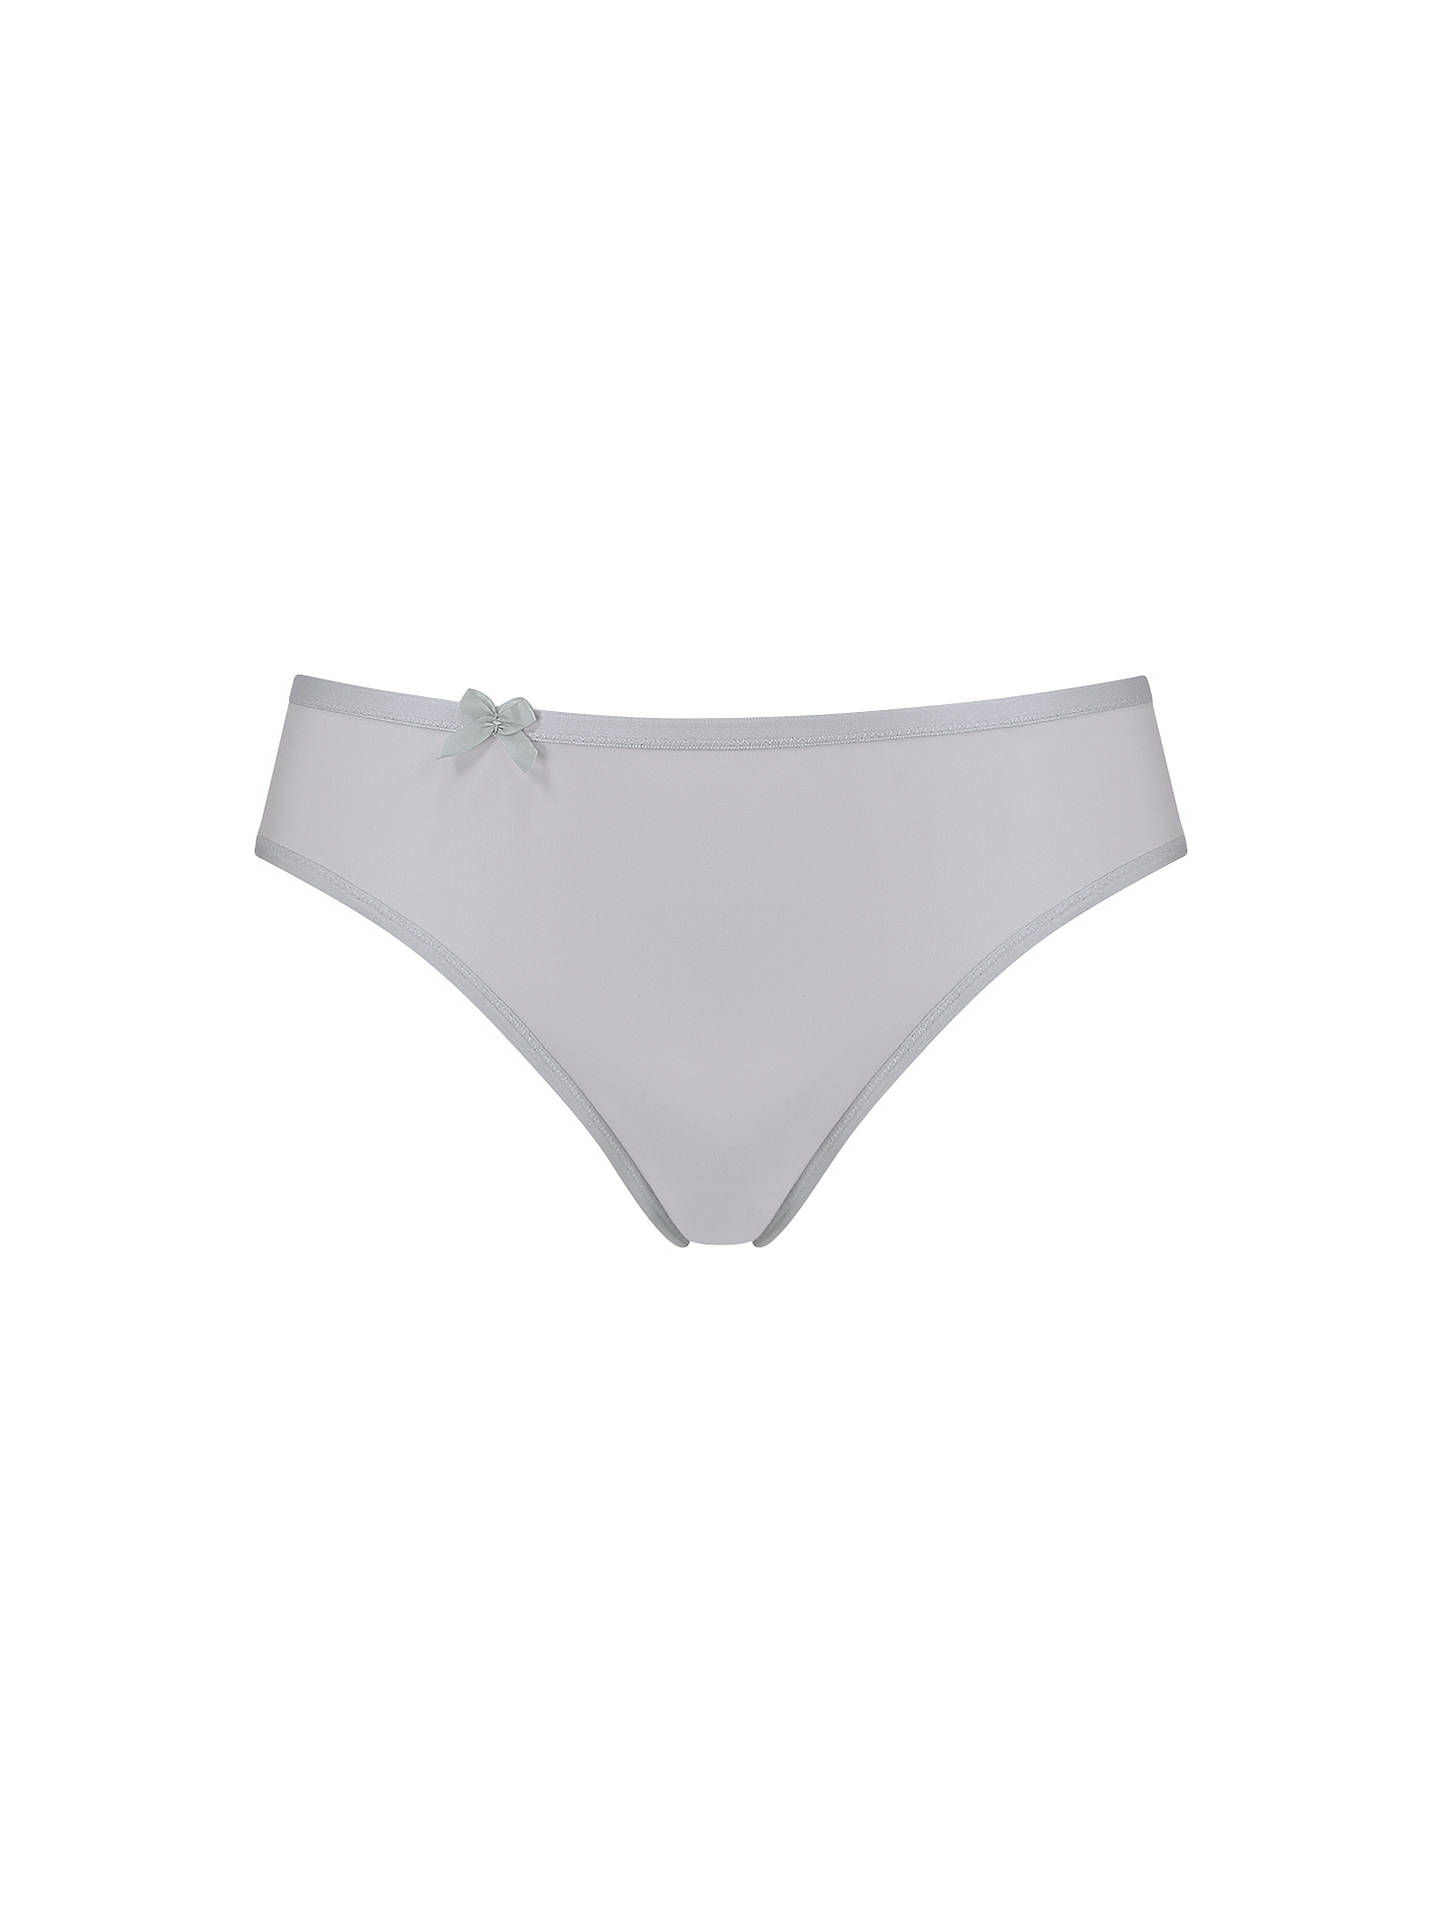 Buysloggi Wow Comfort Mini Briefs, Feather, 10 Online at johnlewis.com